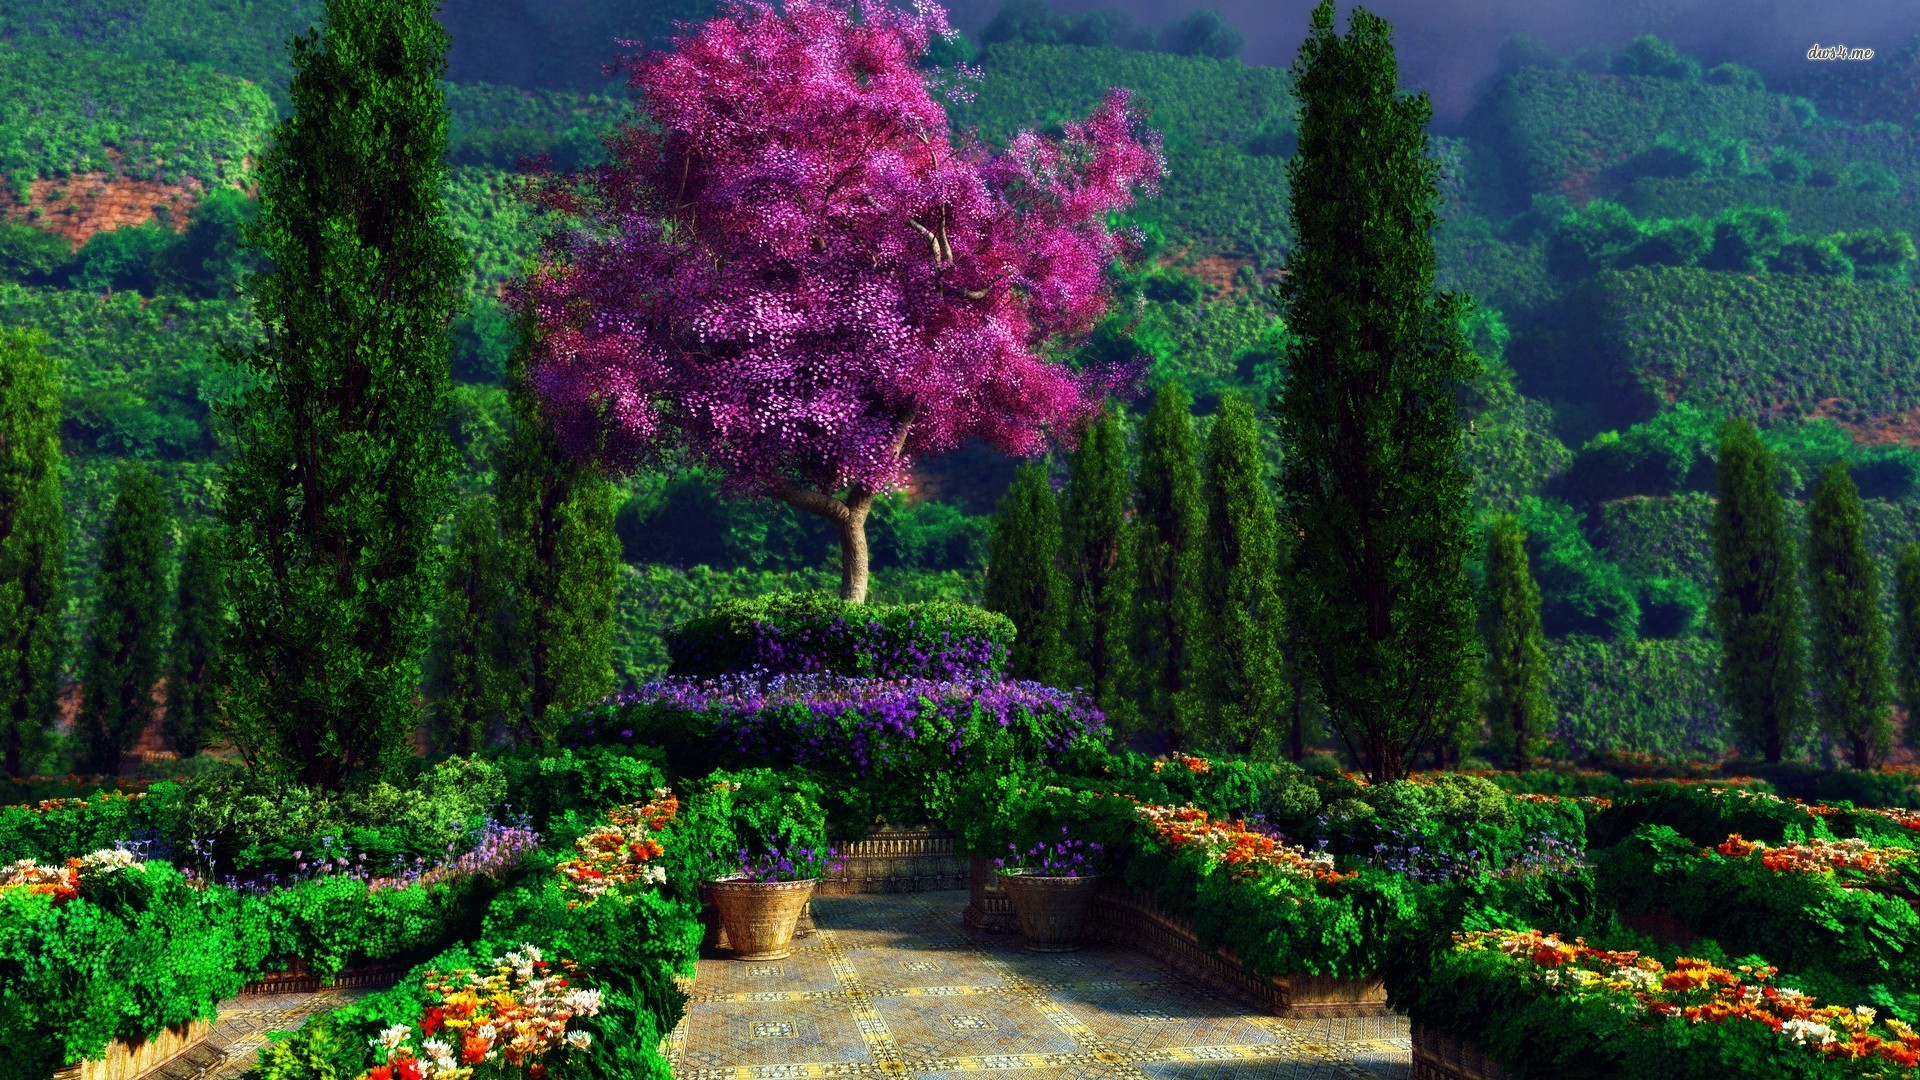 1920X1080 HD Garden Wallpaper